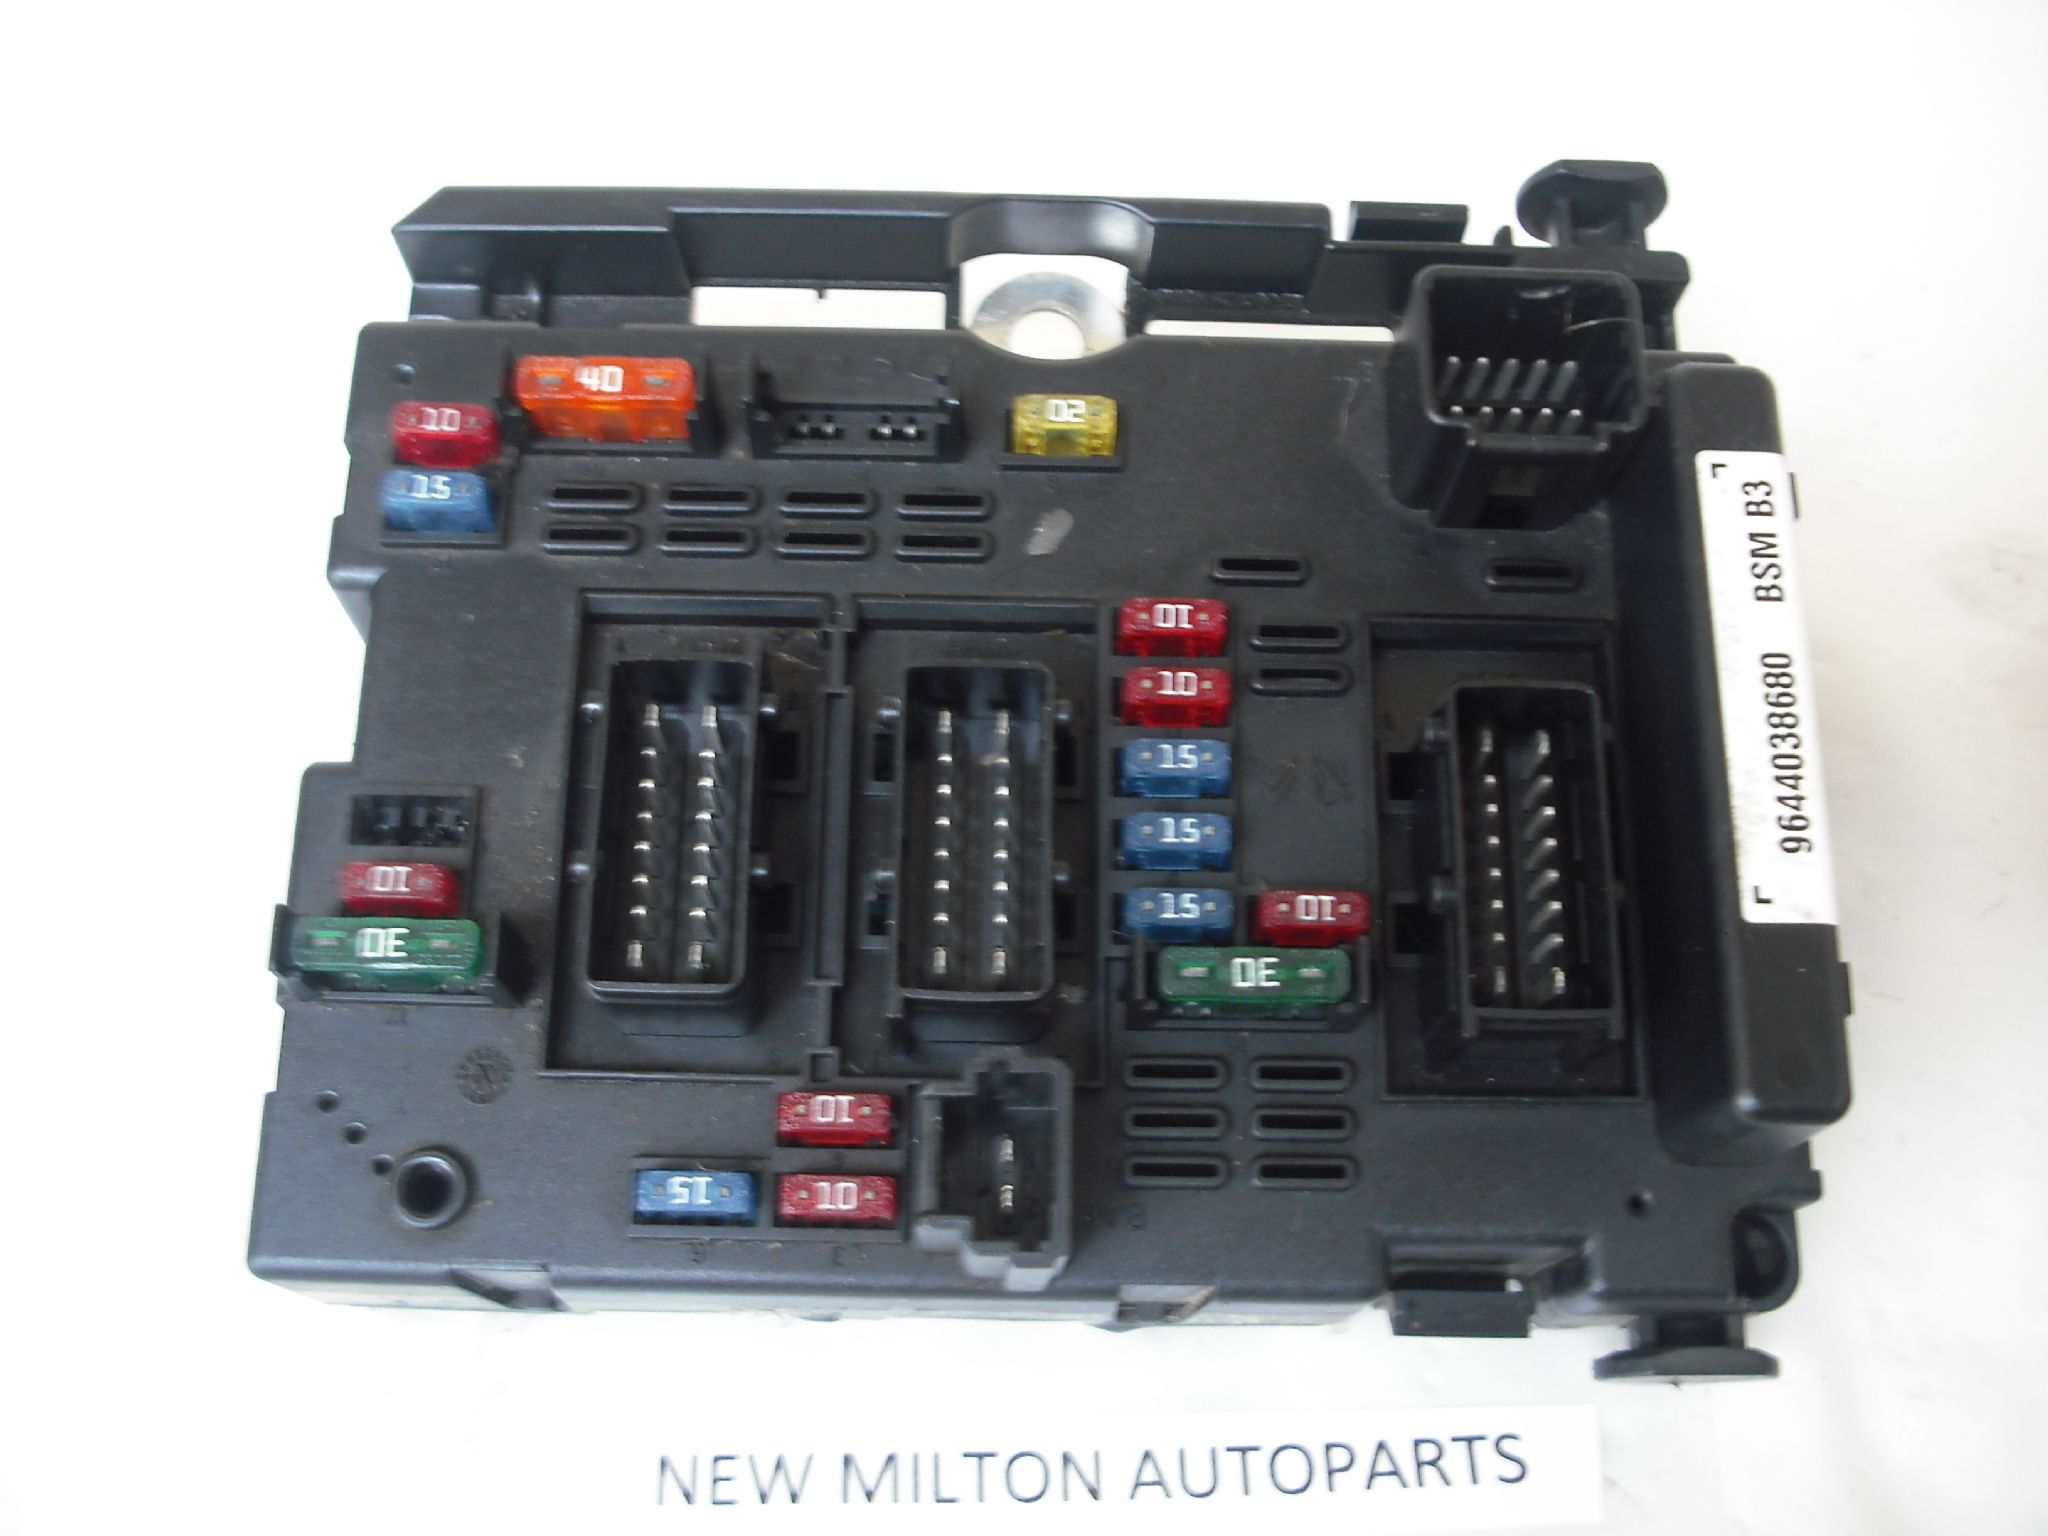 citroen saxo fuse box location